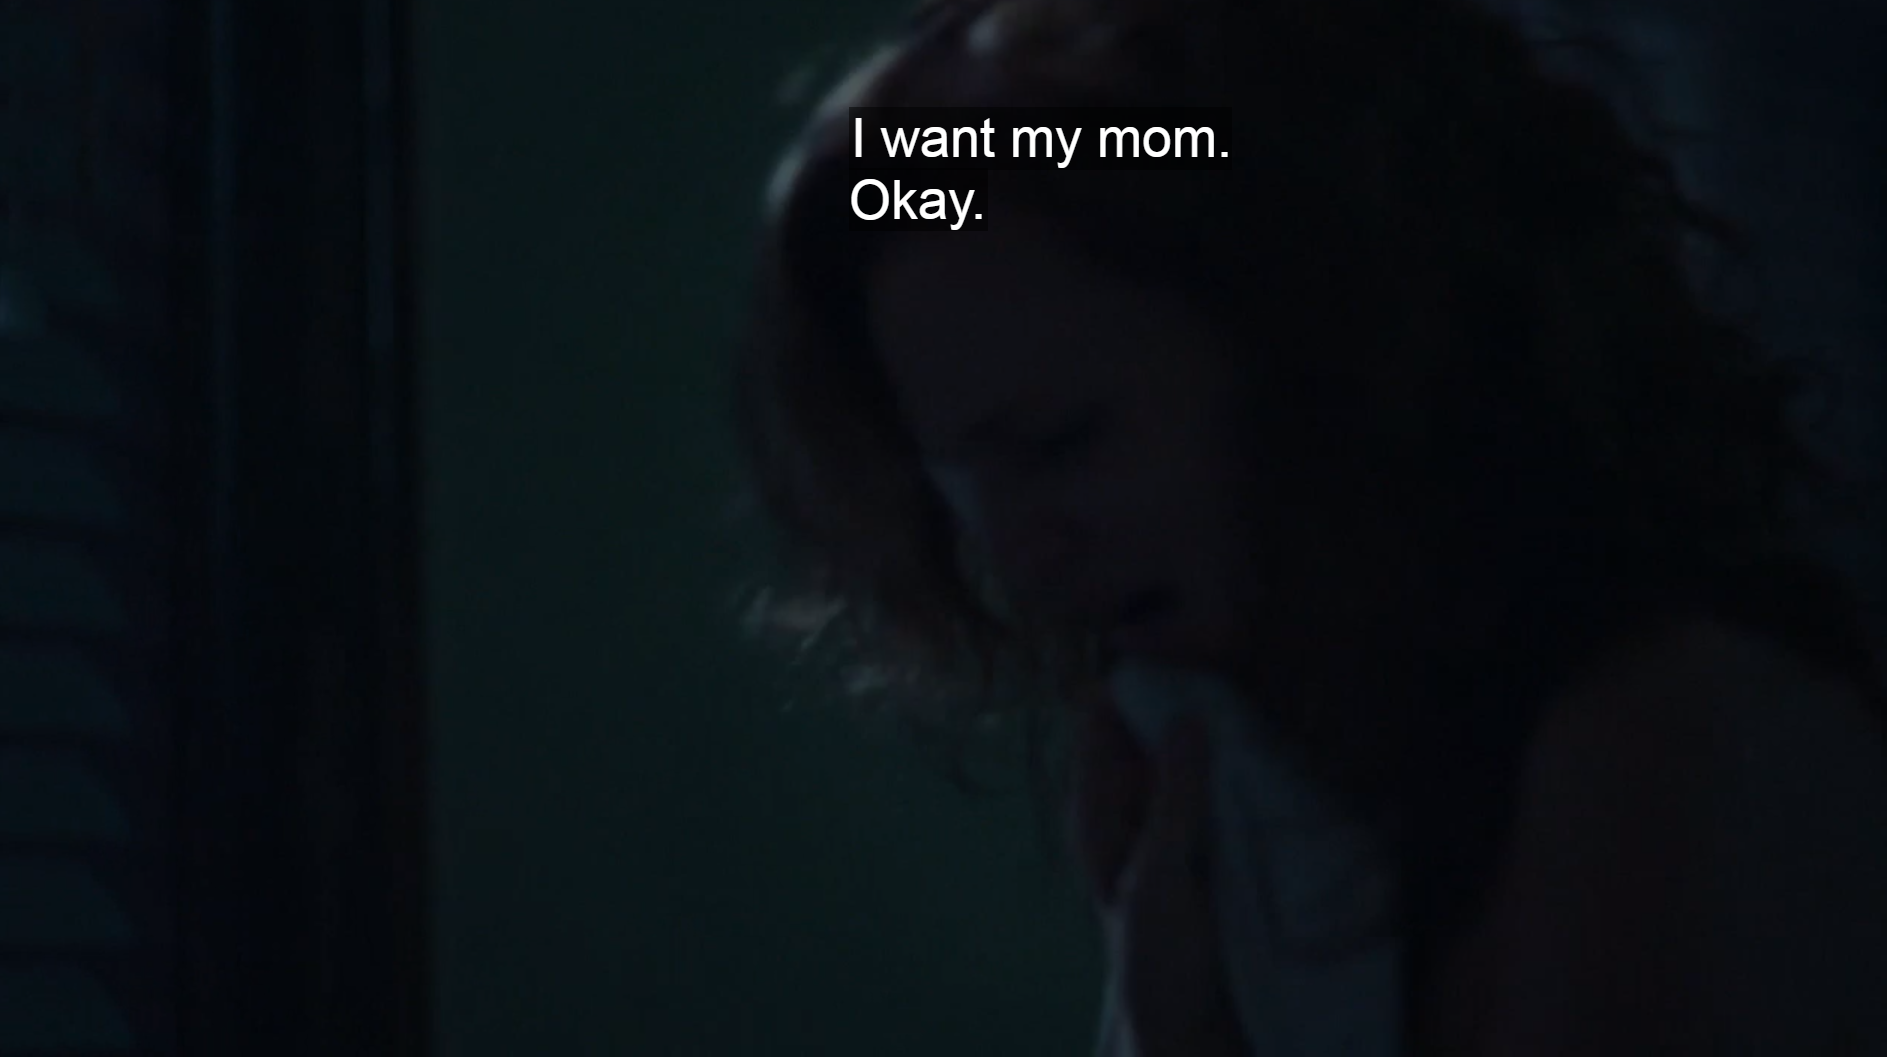 Dim shot of woman's head. Captions: I want my mom. Okay.